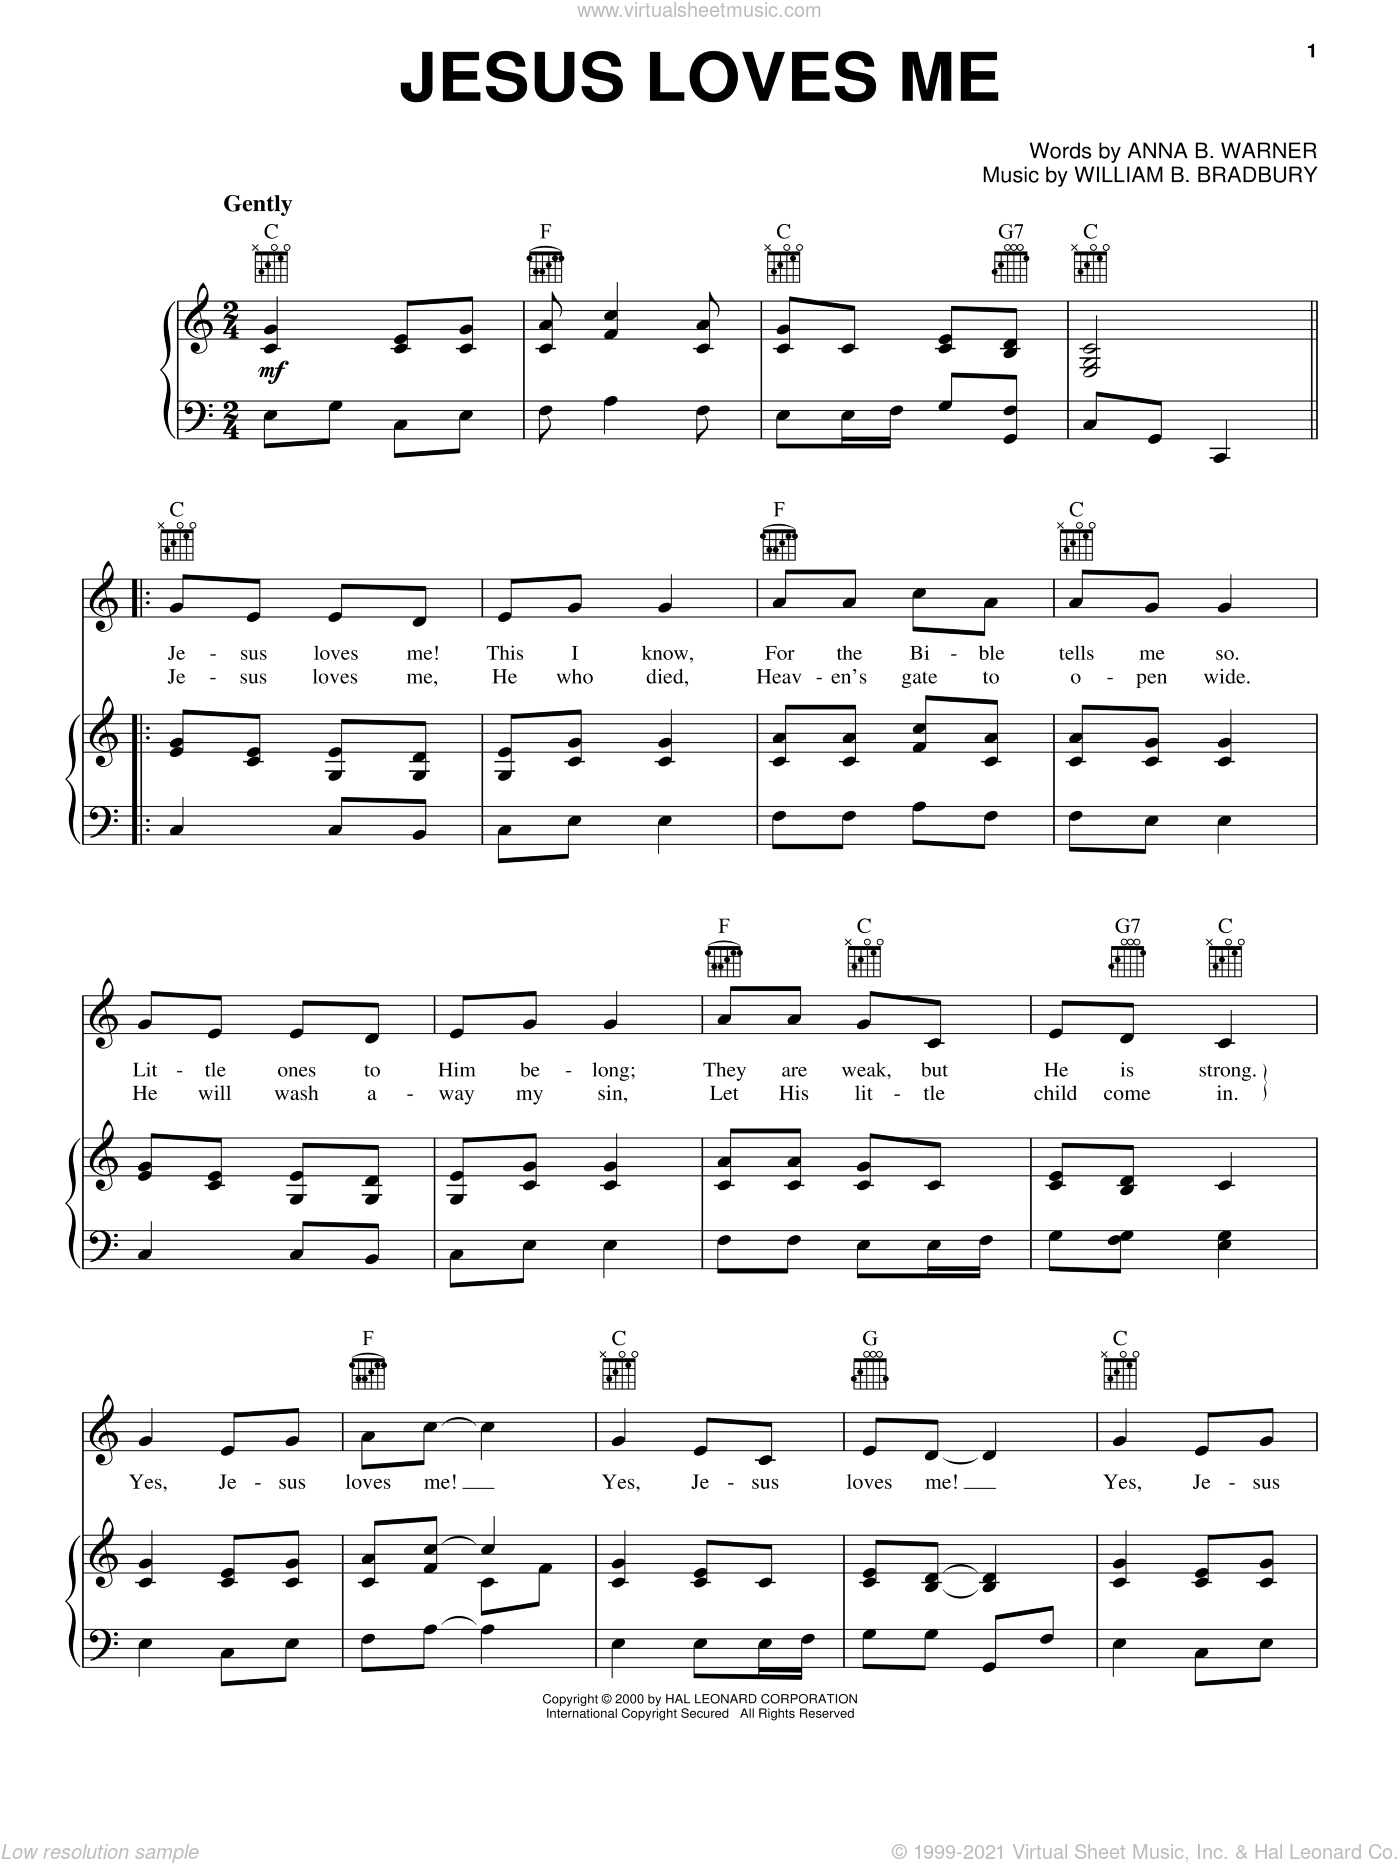 Jesus Loves Me sheet music for voice, piano or guitar by William B. Bradbury